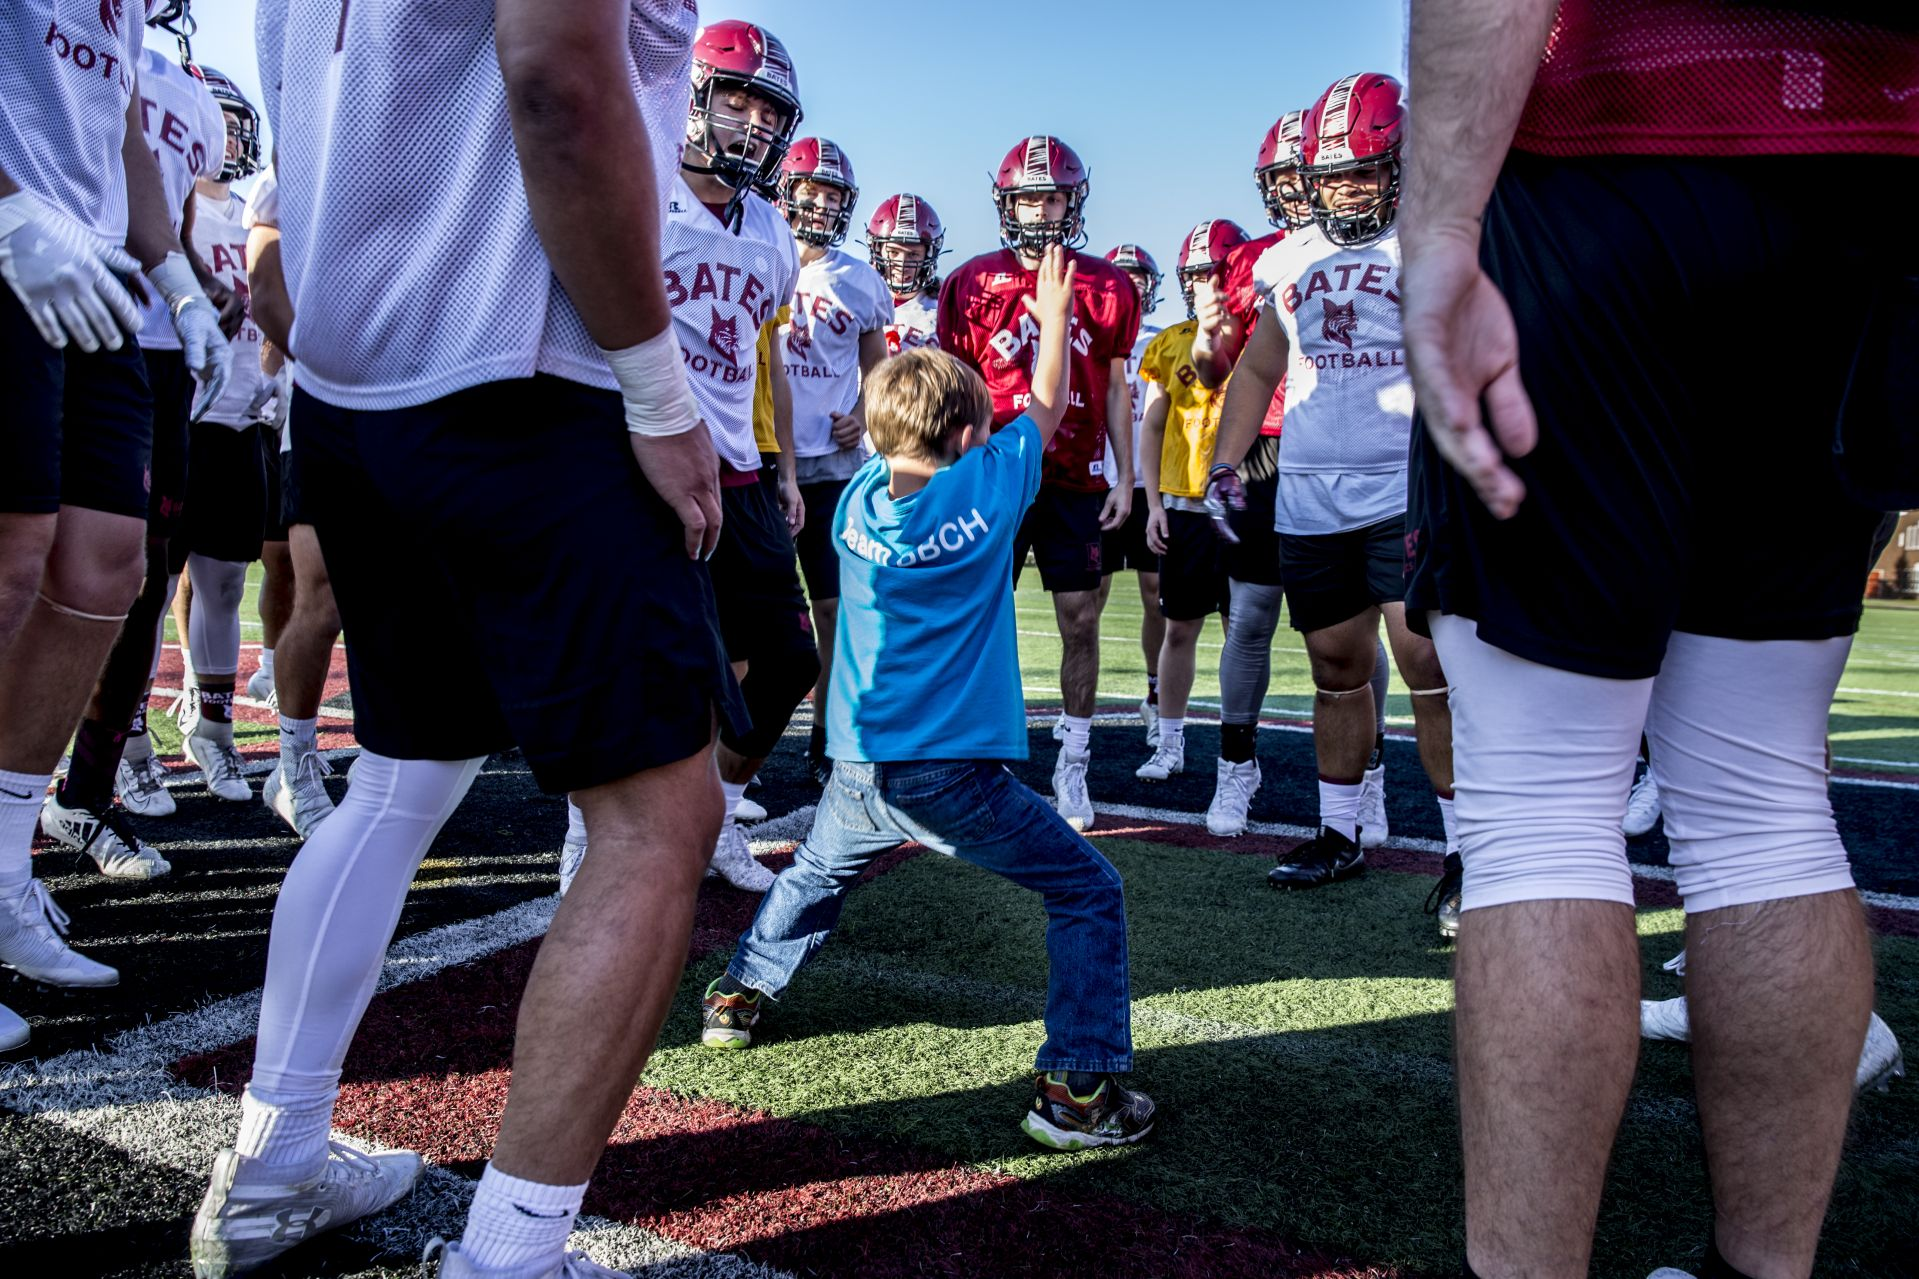 During its Sept. 19, 2019 practice, honorary team captain, Brayden Austin, 6, of Sabbatus, joins the team on the field. (Phyllis Graber Jensen/Bates College)